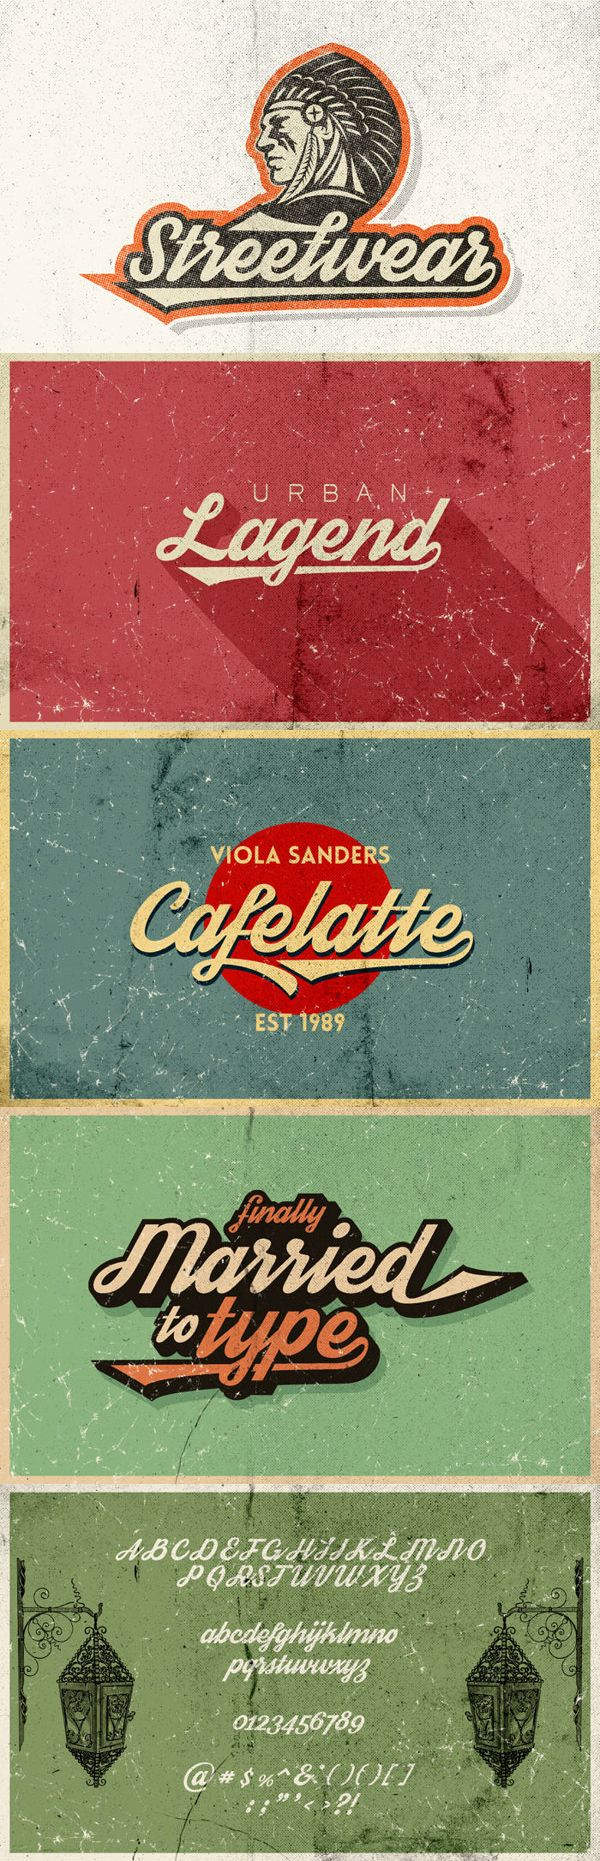 Streetwear is bold and stylish retro inspired script typeface